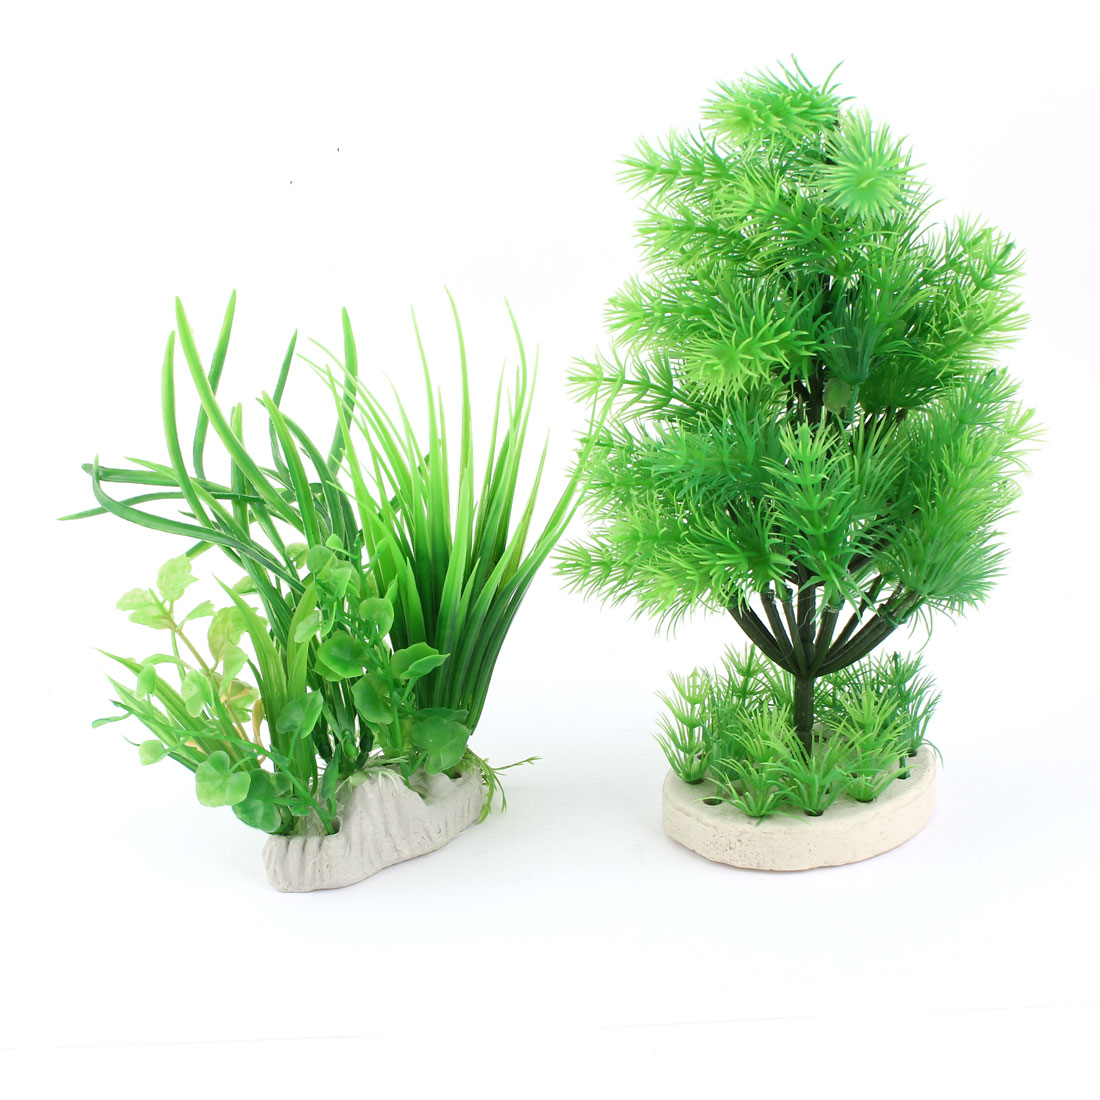 "Fish Tank Green Plastic 8.7"" Pine Tree Grass Aquatic Plants Decor 2 Pcs"